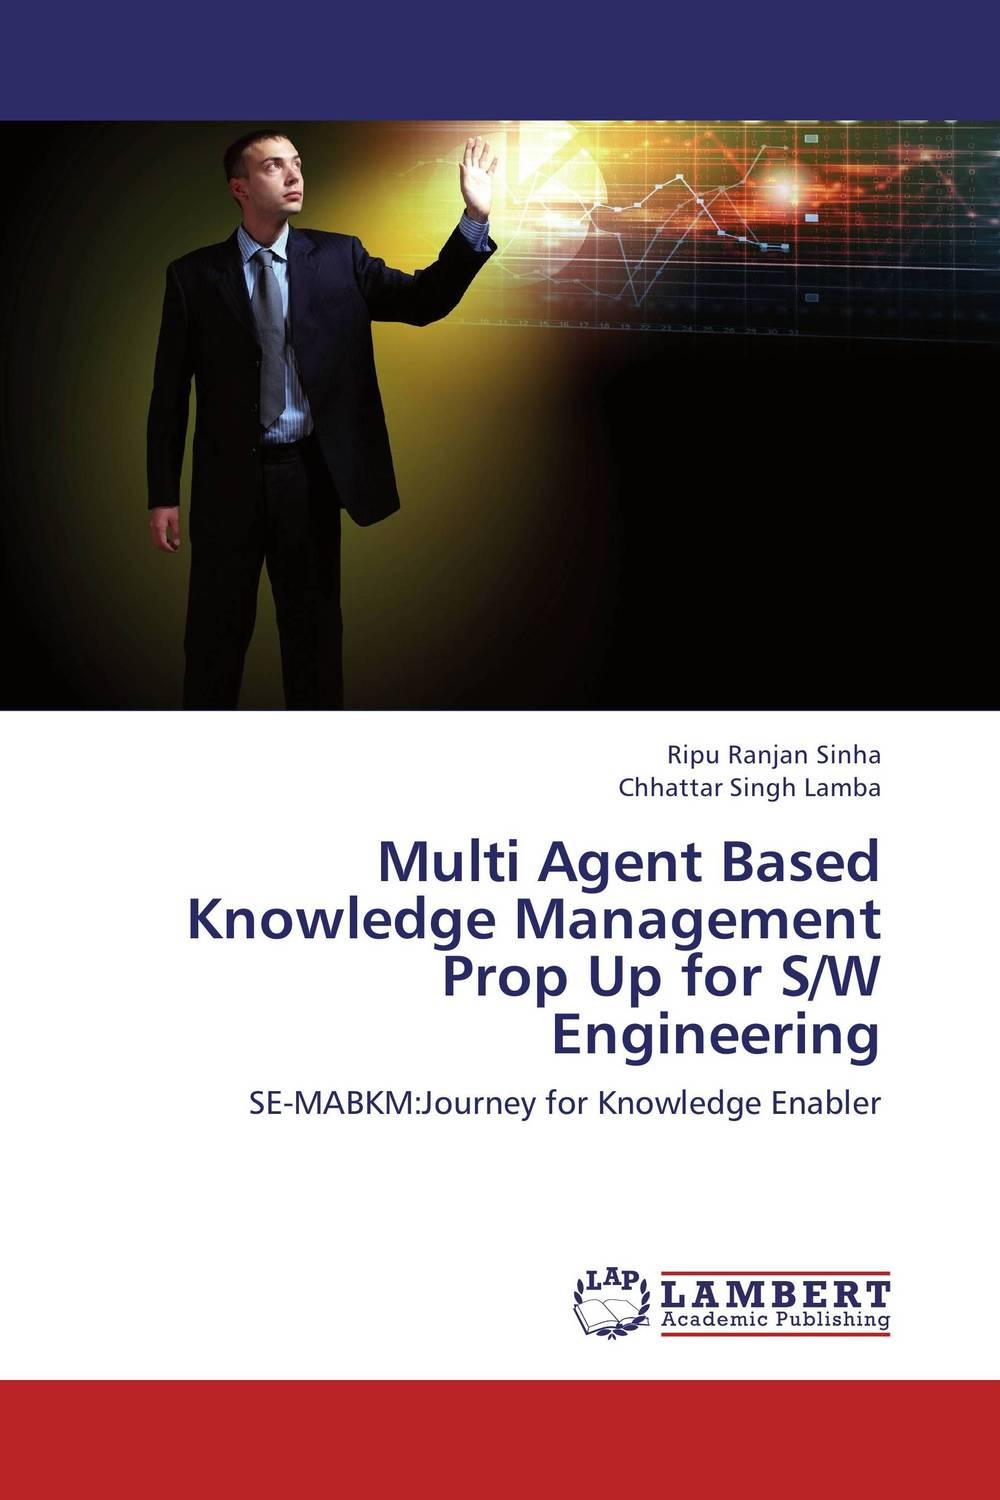 Multi Agent Based Knowledge Management Prop Up for S/W Engineering manage enterprise knowledge systematically